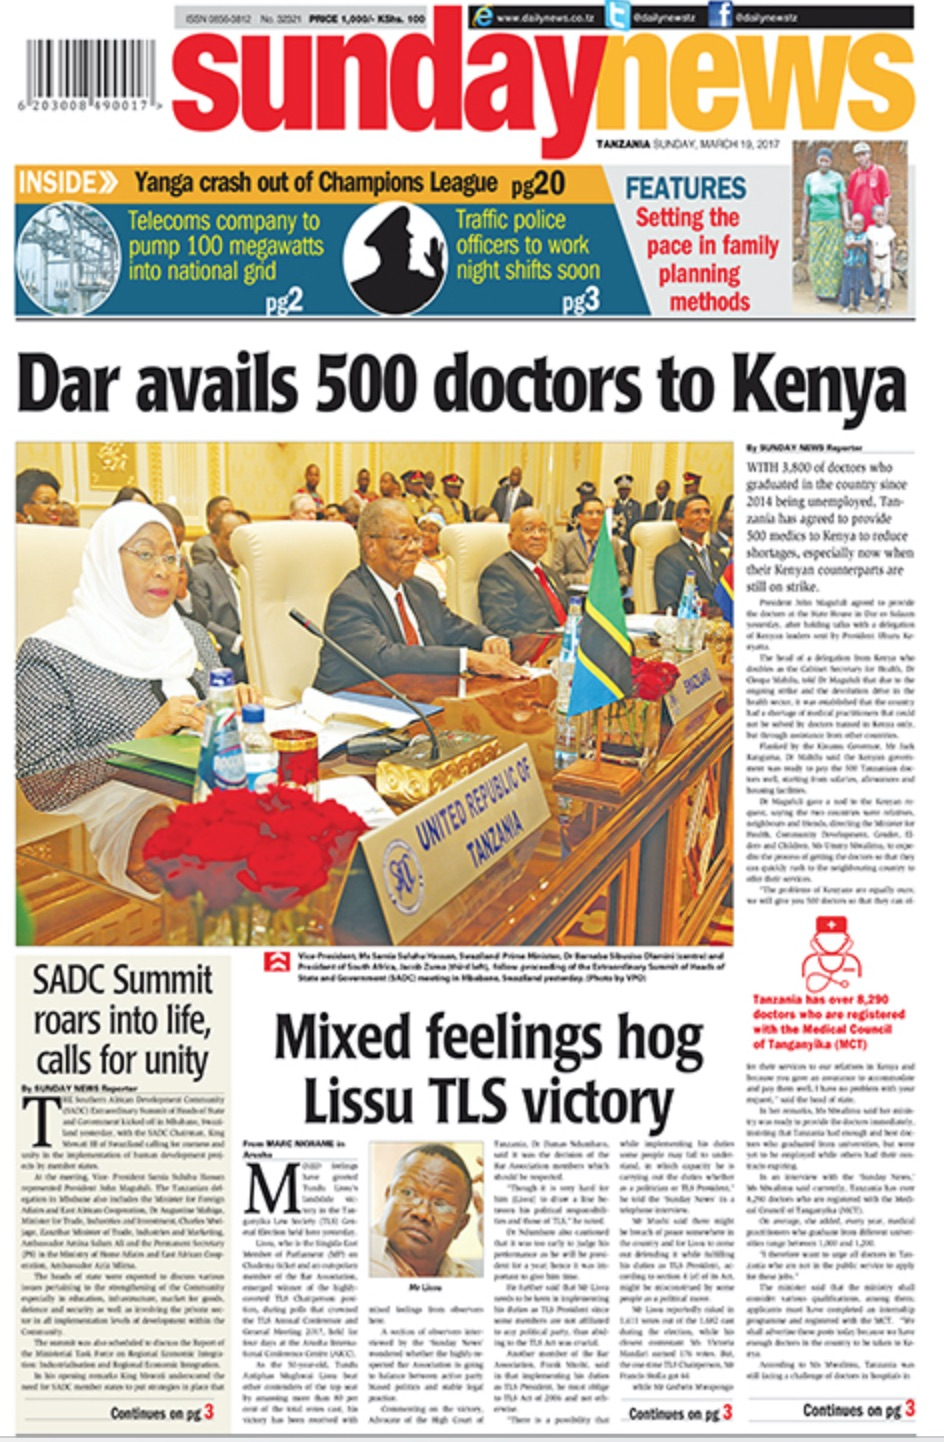 DAR AVAILS 500 DOCTORS TO KENYA